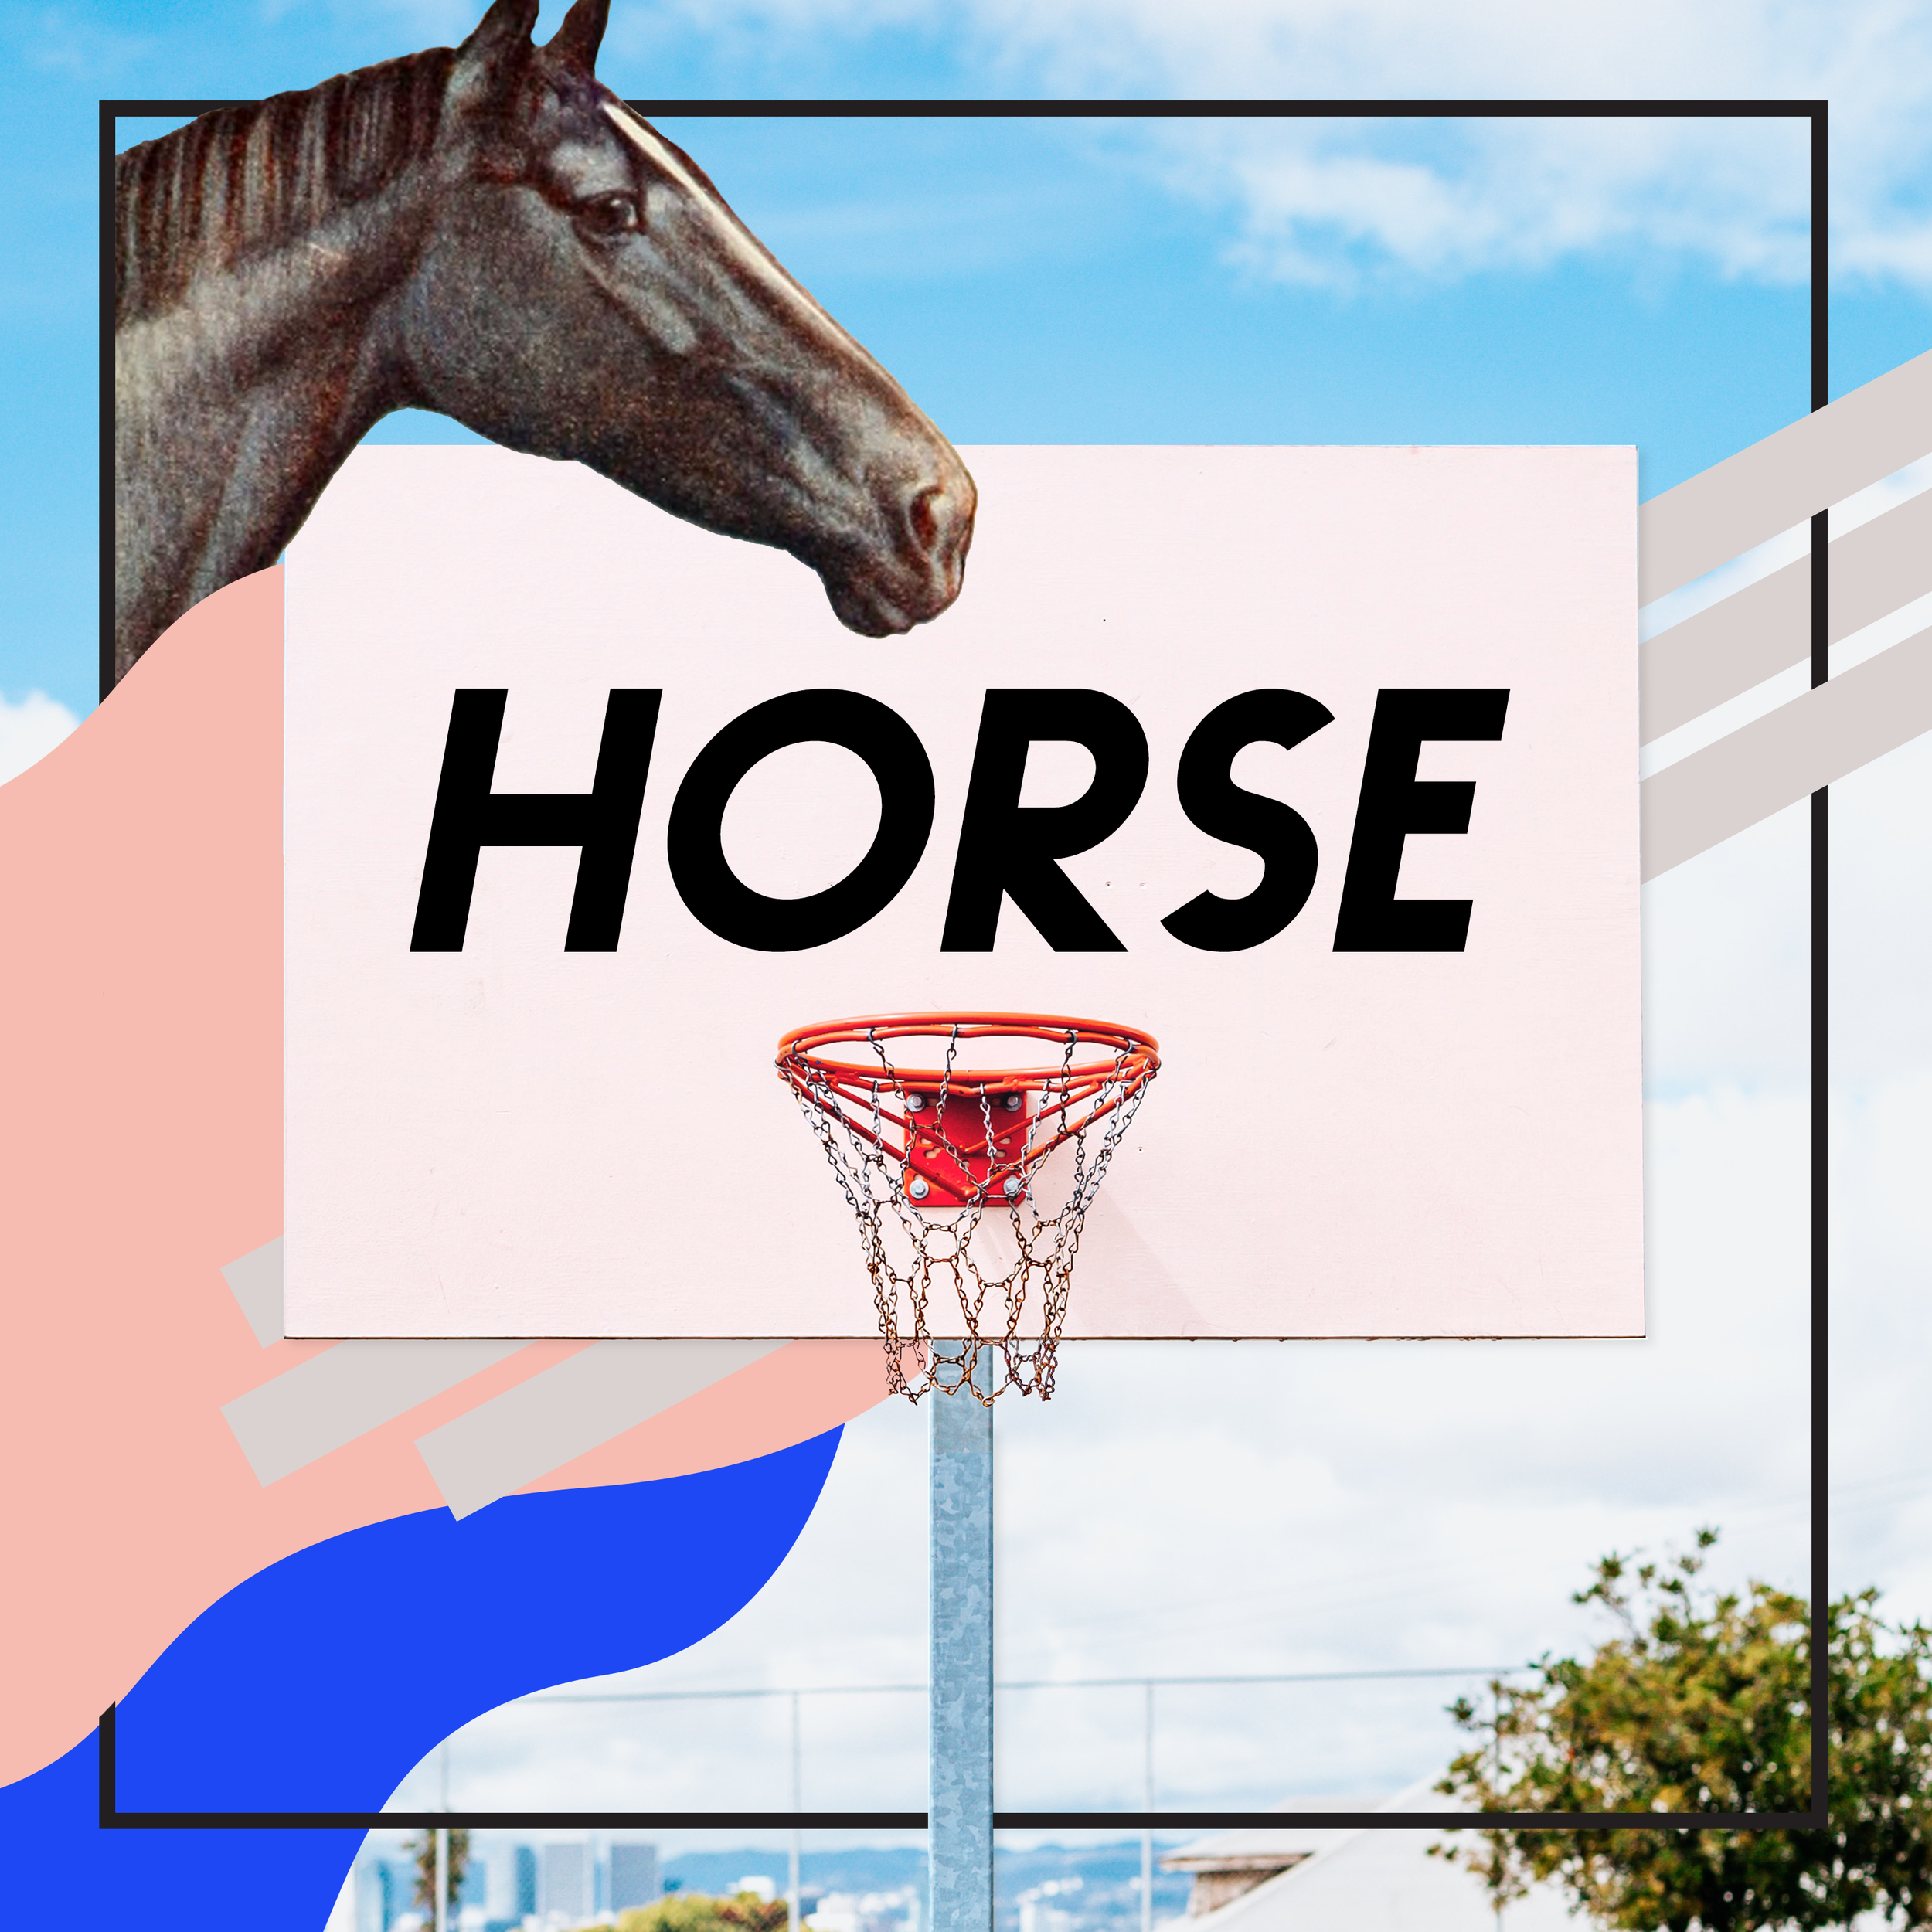 HORSE - Because basketball is so much more than what happens on the court.A basketball podcast about everything except wins and losses—like beefs, Internet drama, and fun. The NBA is now a 365-day league and it's never been more present in pop culture. From Kevin Durant's burner accounts to LeBron taking his talents anywhere to trusting the Process, the NBA is becoming a pop culture requirement. At the same time, sports can have gatekeepers that make it insular and frustrating for people who aren't die hard fans. We're here to prove that basketball is entertaining to follow for all fans, whether you're actively watching the games or not.Co-hosted by Eric Silver and Mike Schubert. New episodes every other Monday. (Website | Patreon | Twitter)